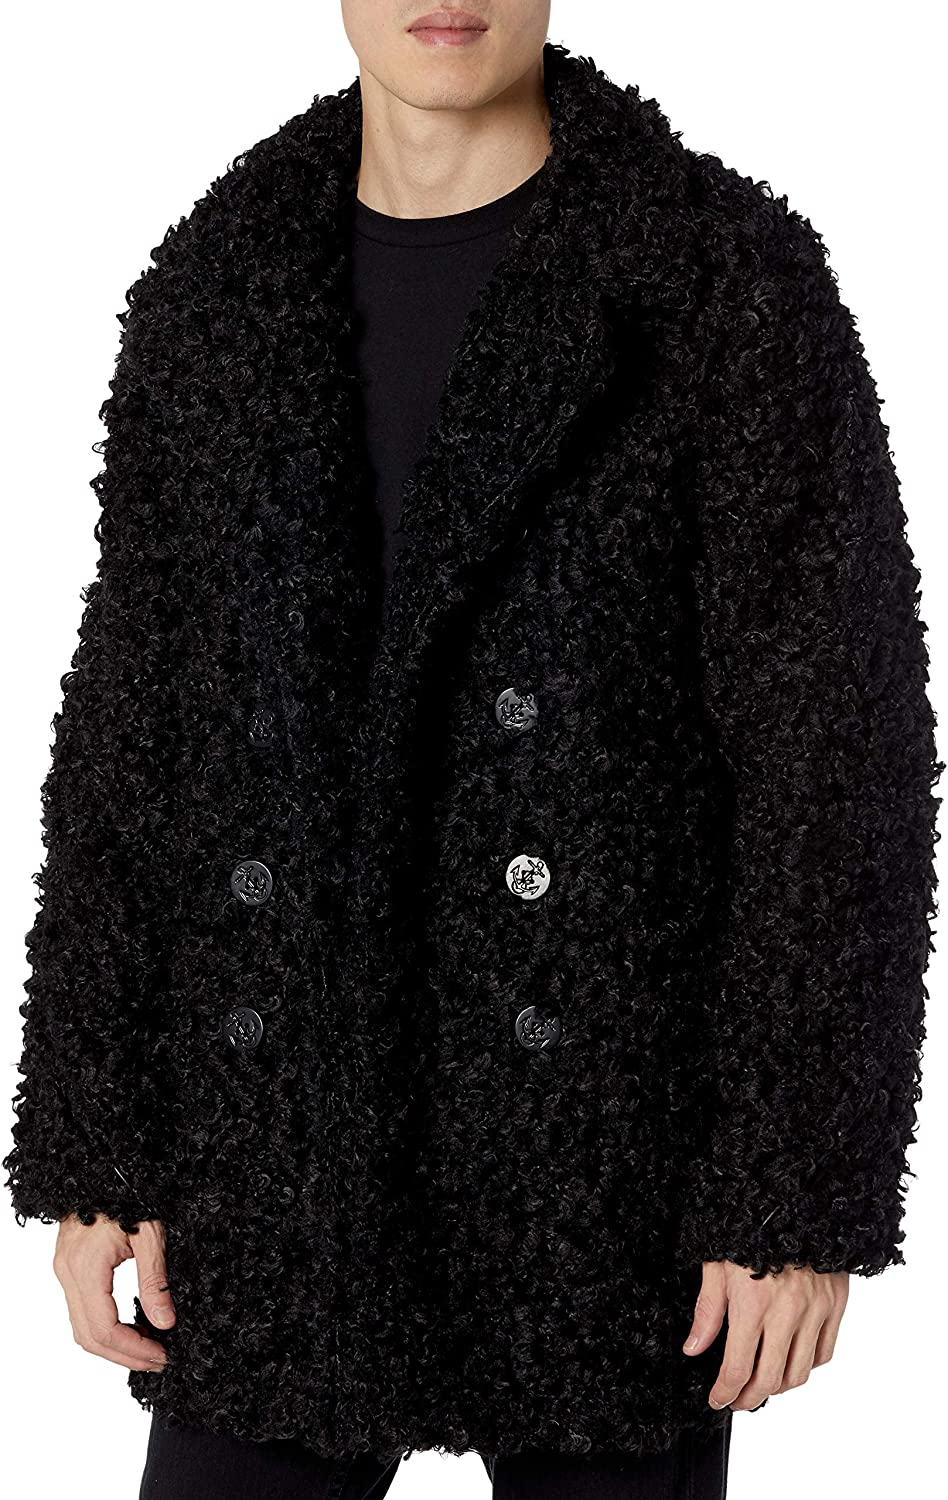 Cult of Individuality Men's Jacket